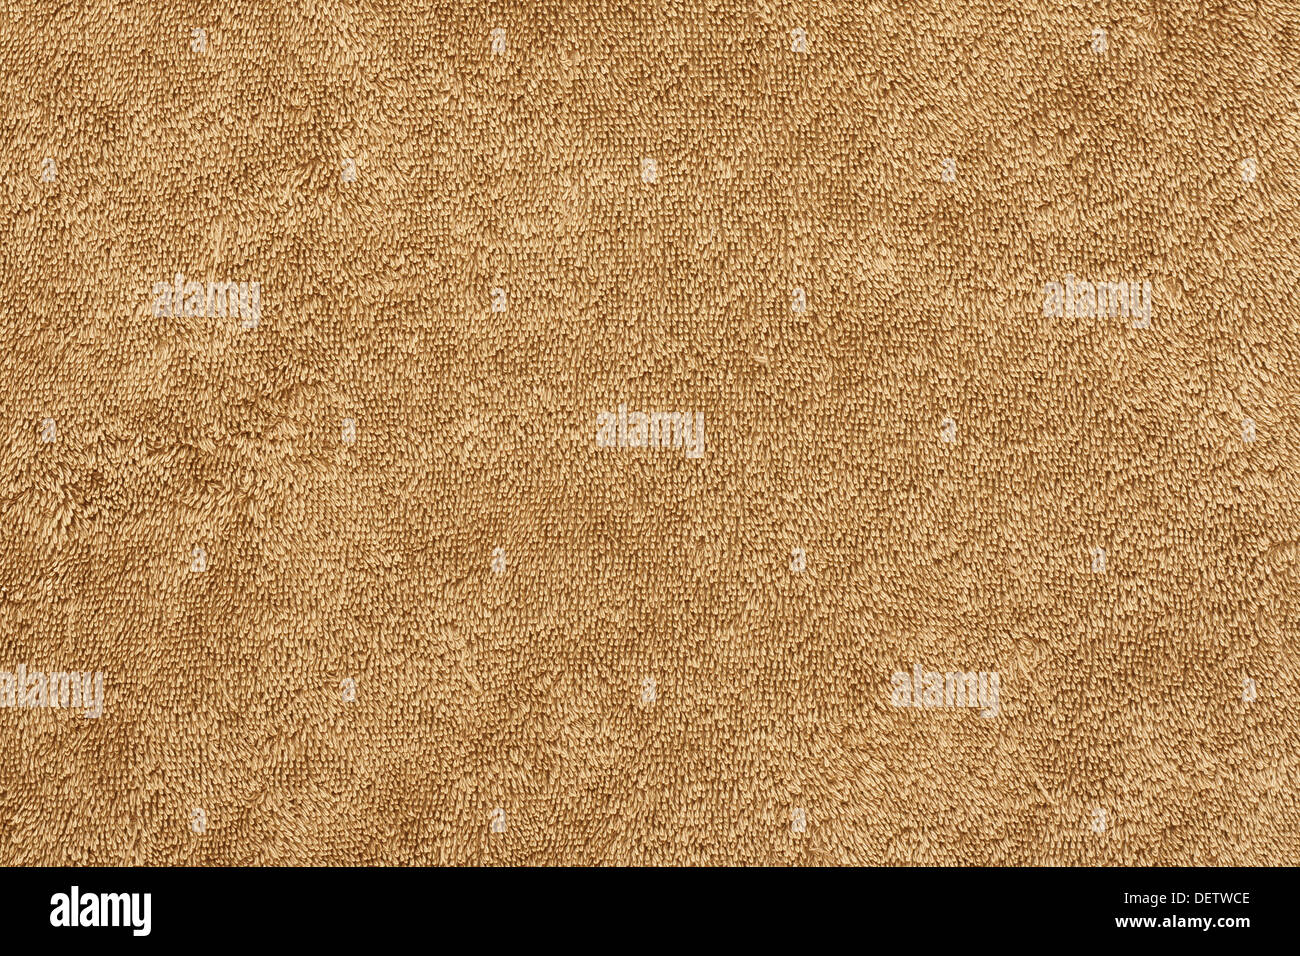 cotton twist towelling background on a beige beach towel - Stock Image